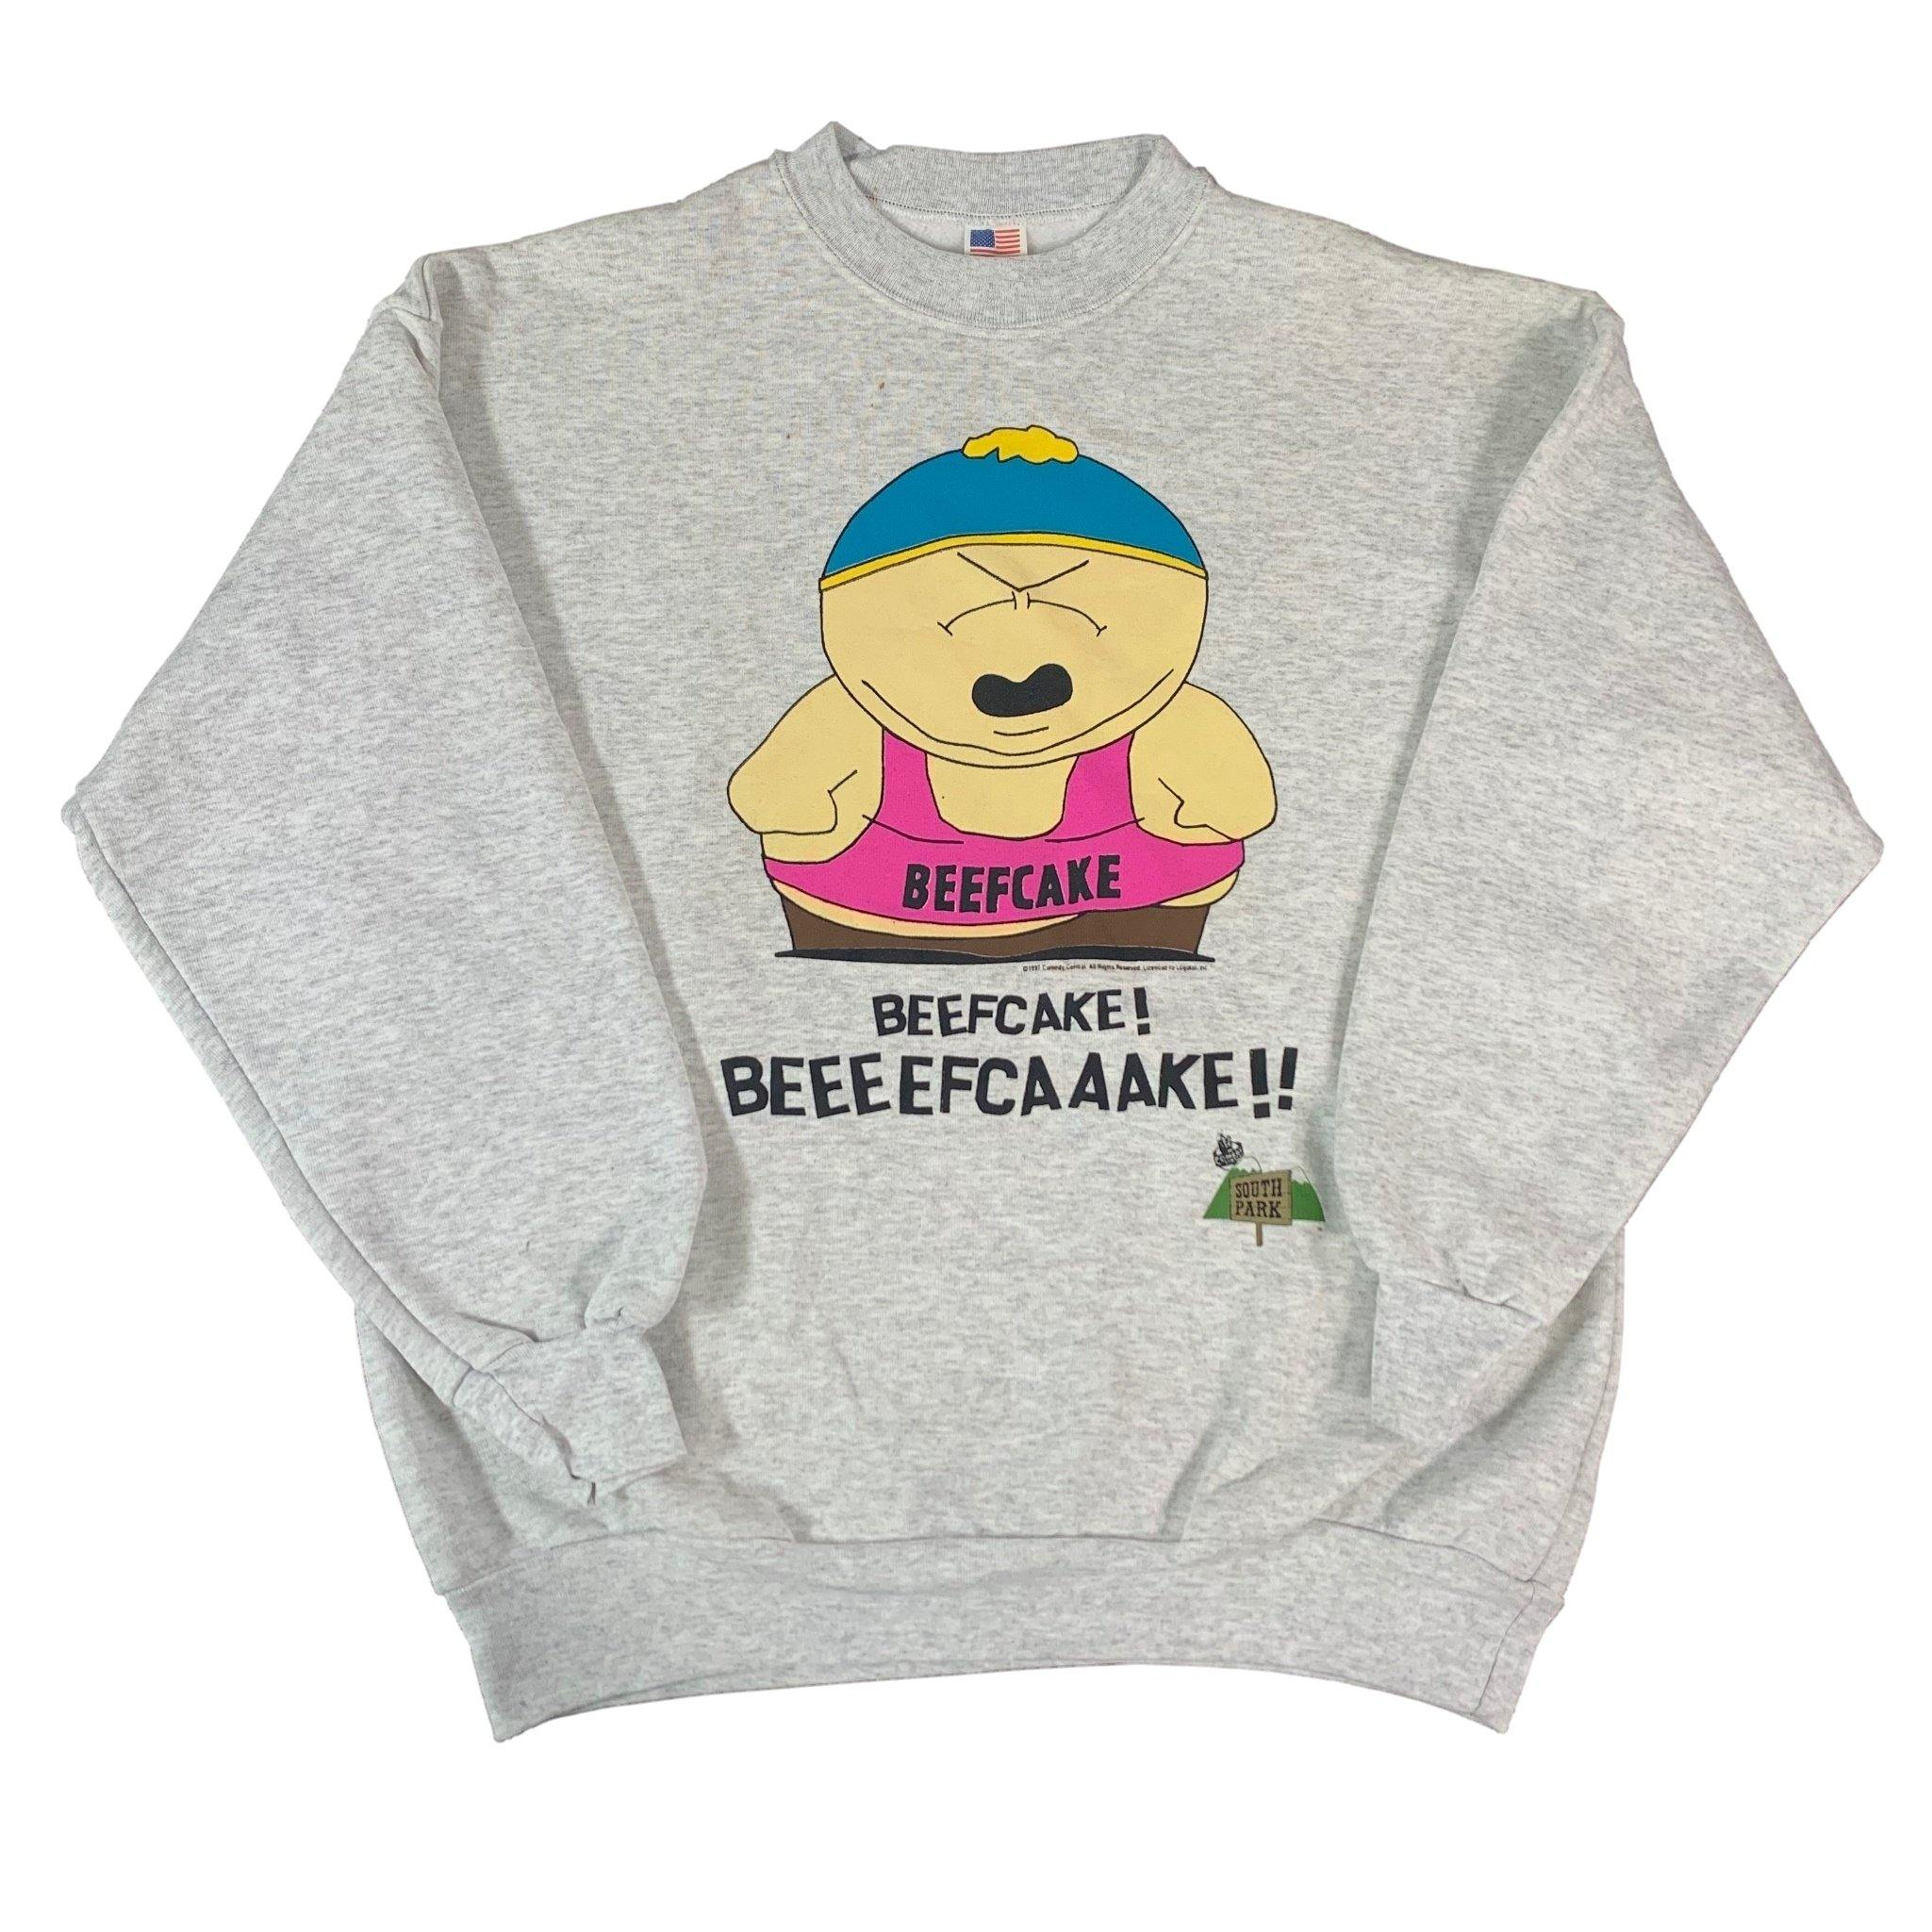 "Vintage South Park ""Beefcake"" Crewneck Sweatshirt"